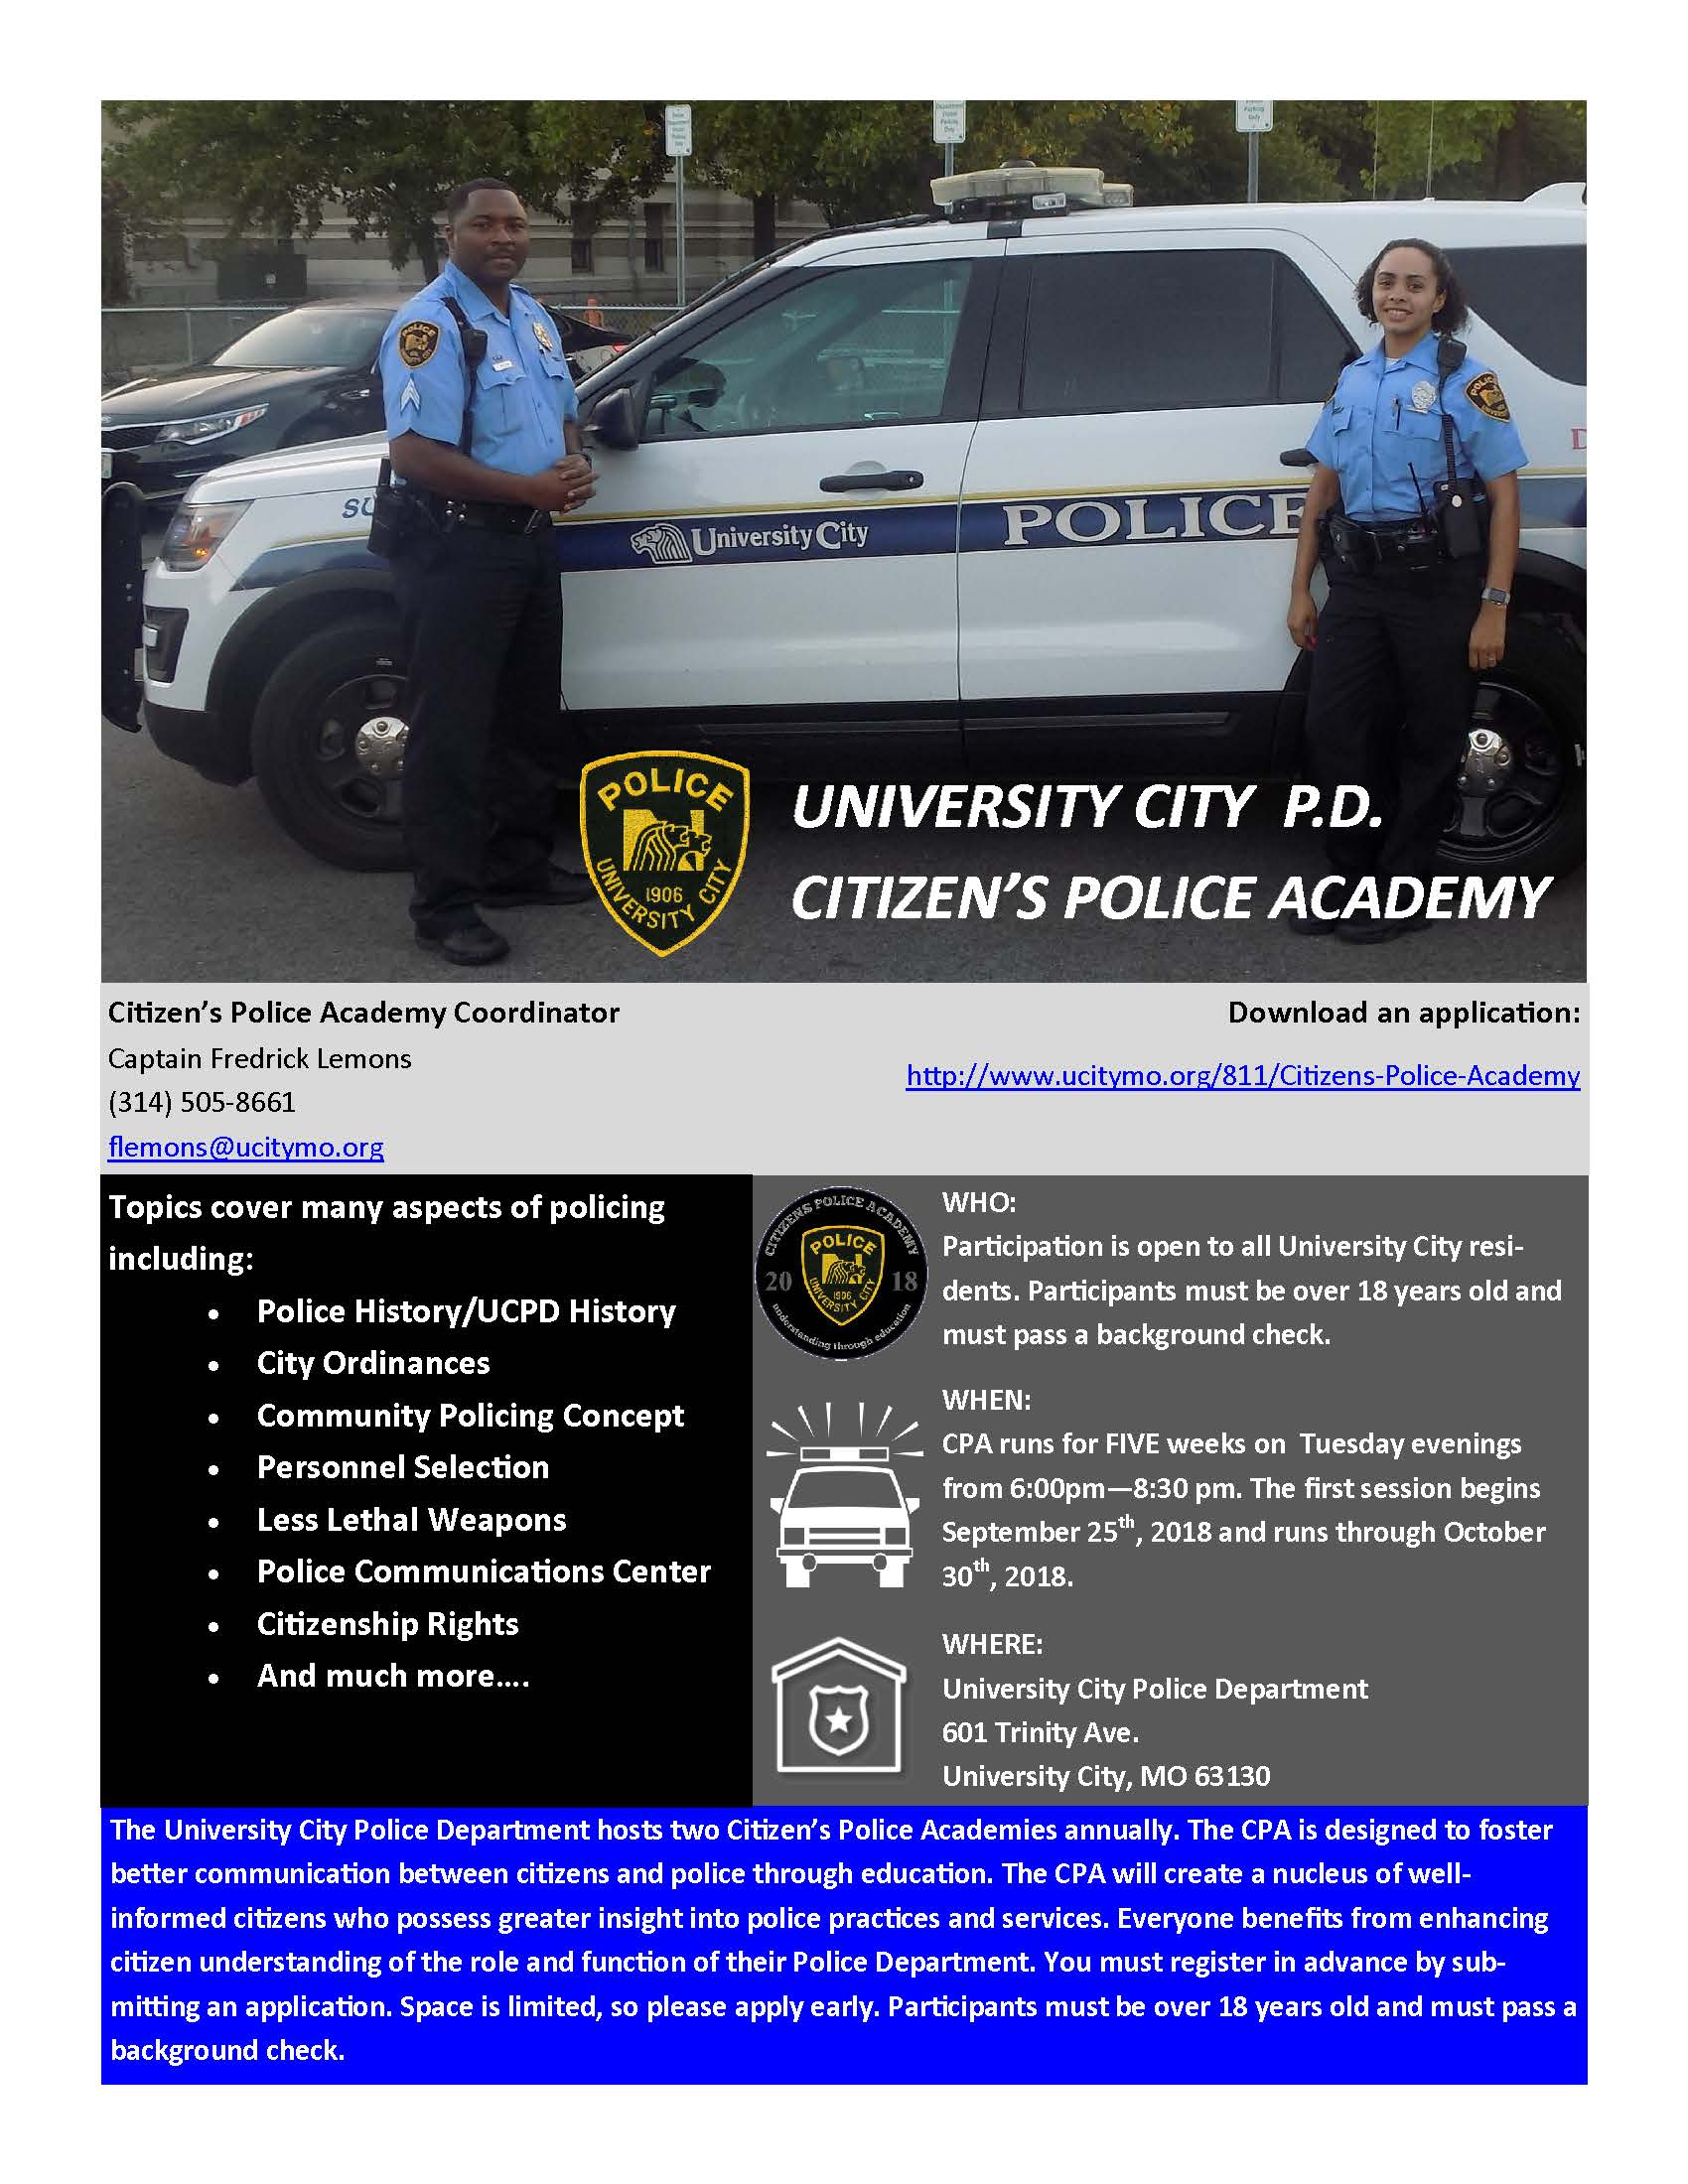 Citizens Academy Flyer 18-02